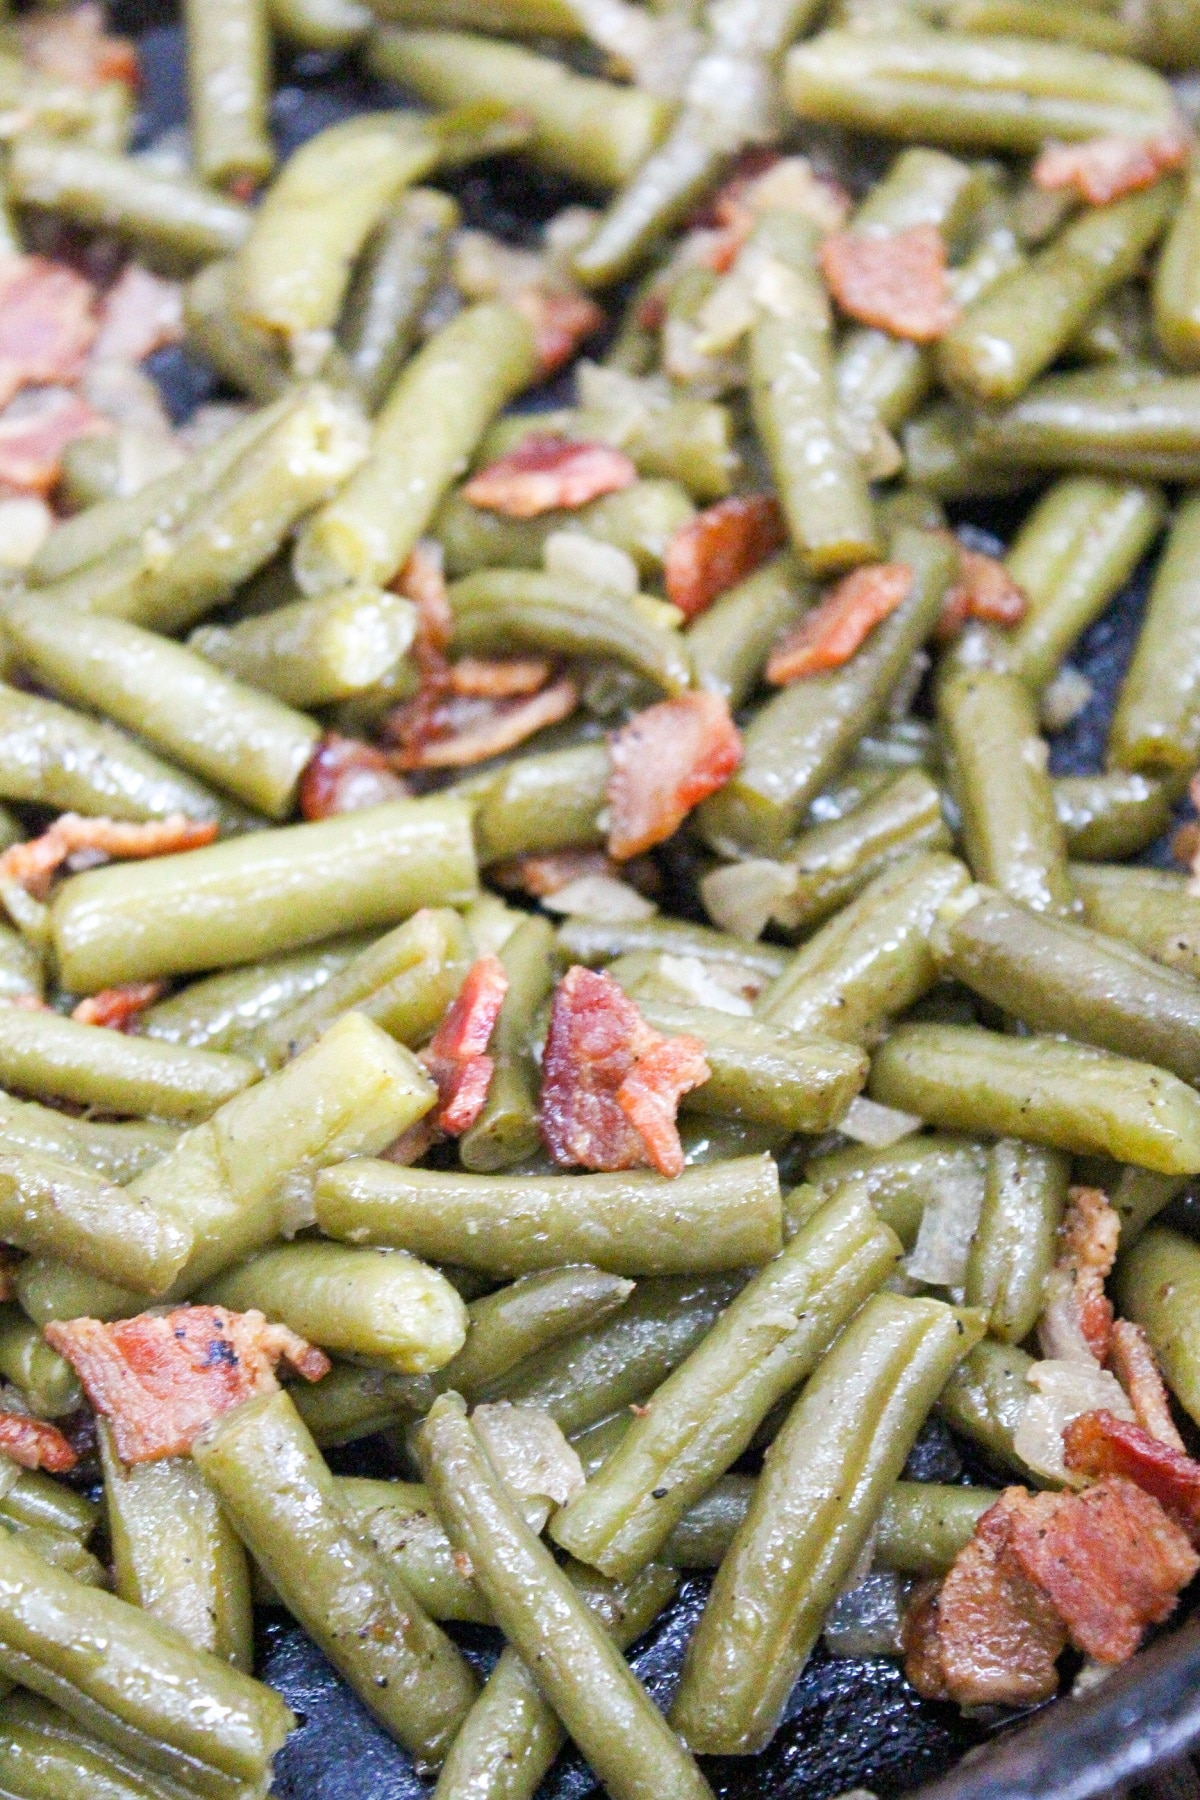 close-up picture of green beans